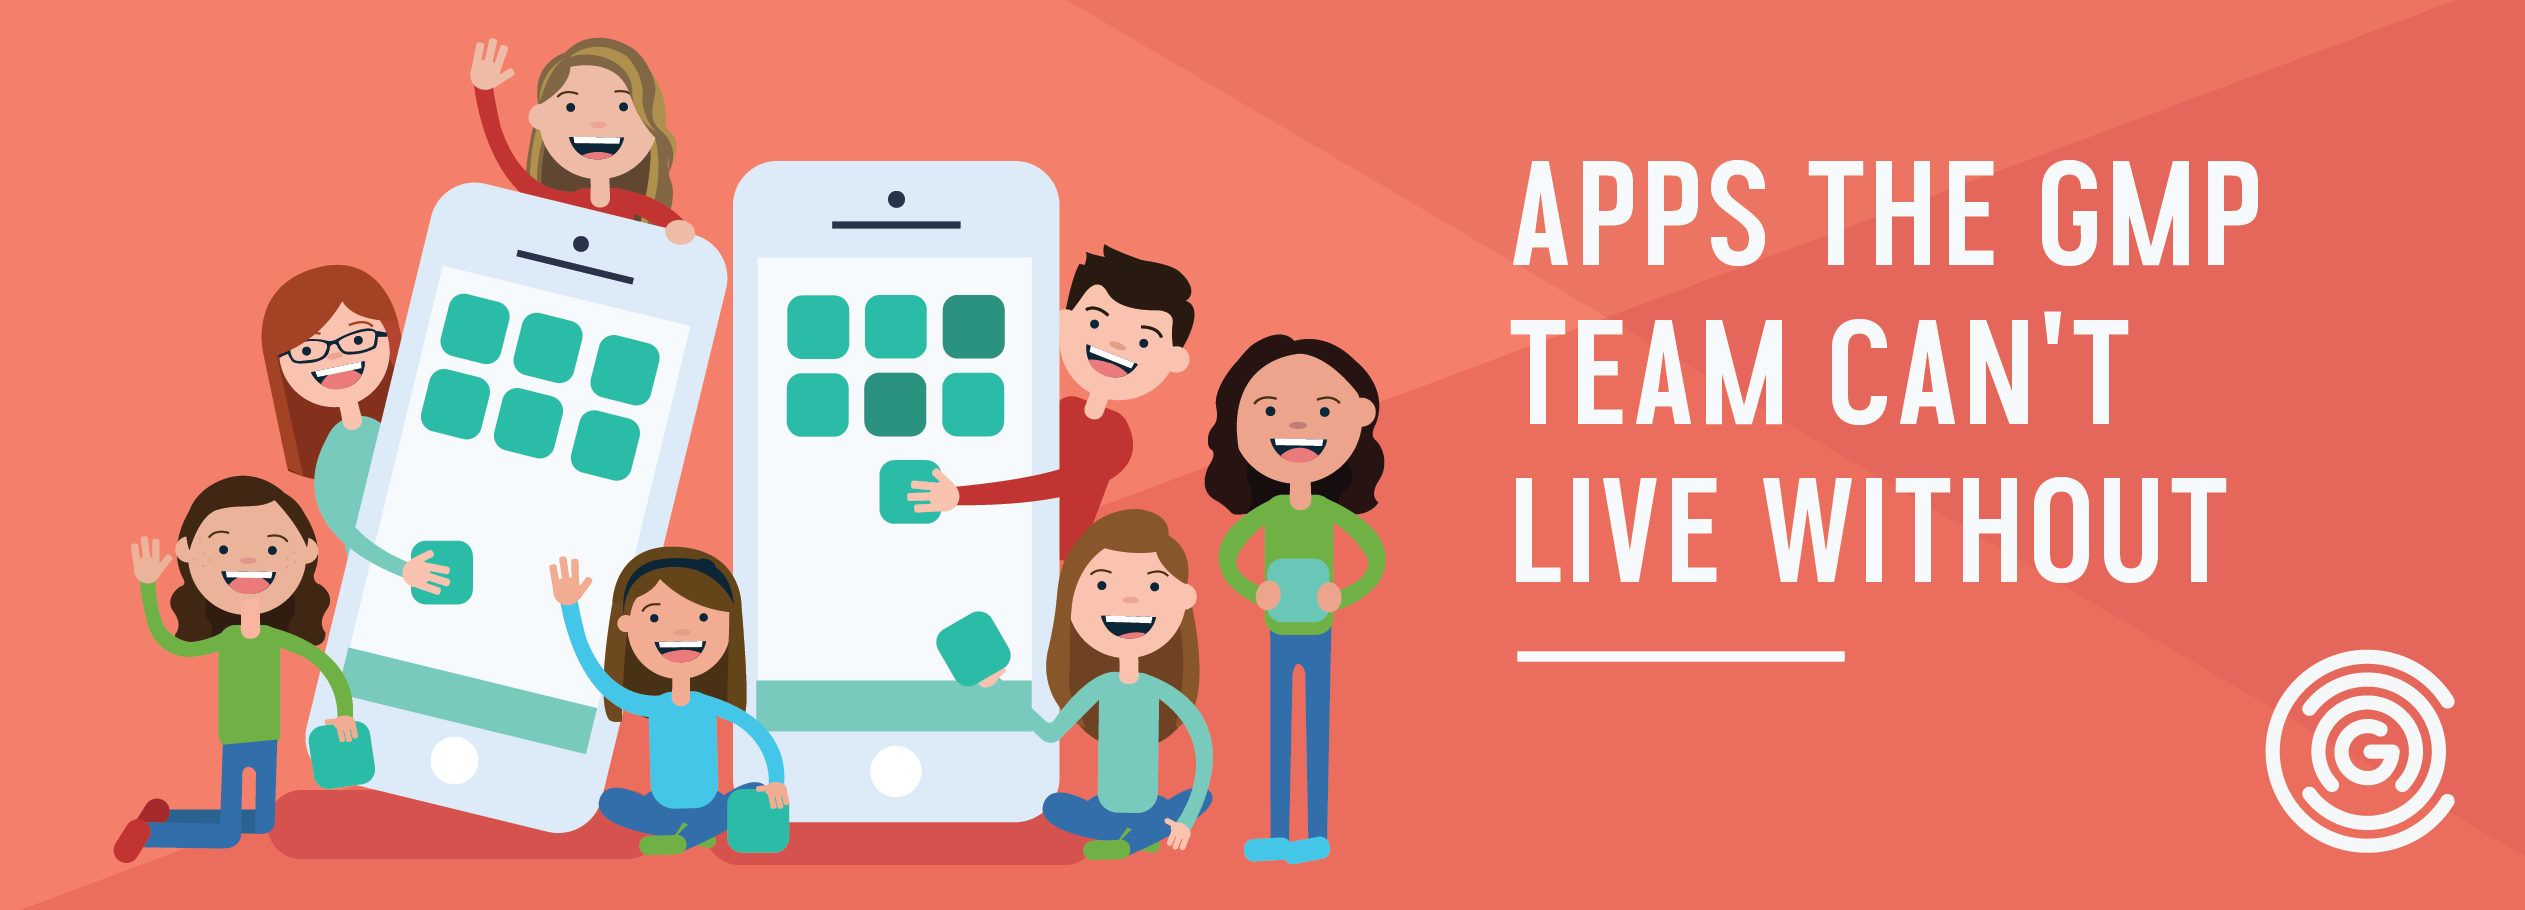 Apps the GMP Team Can't Live Without